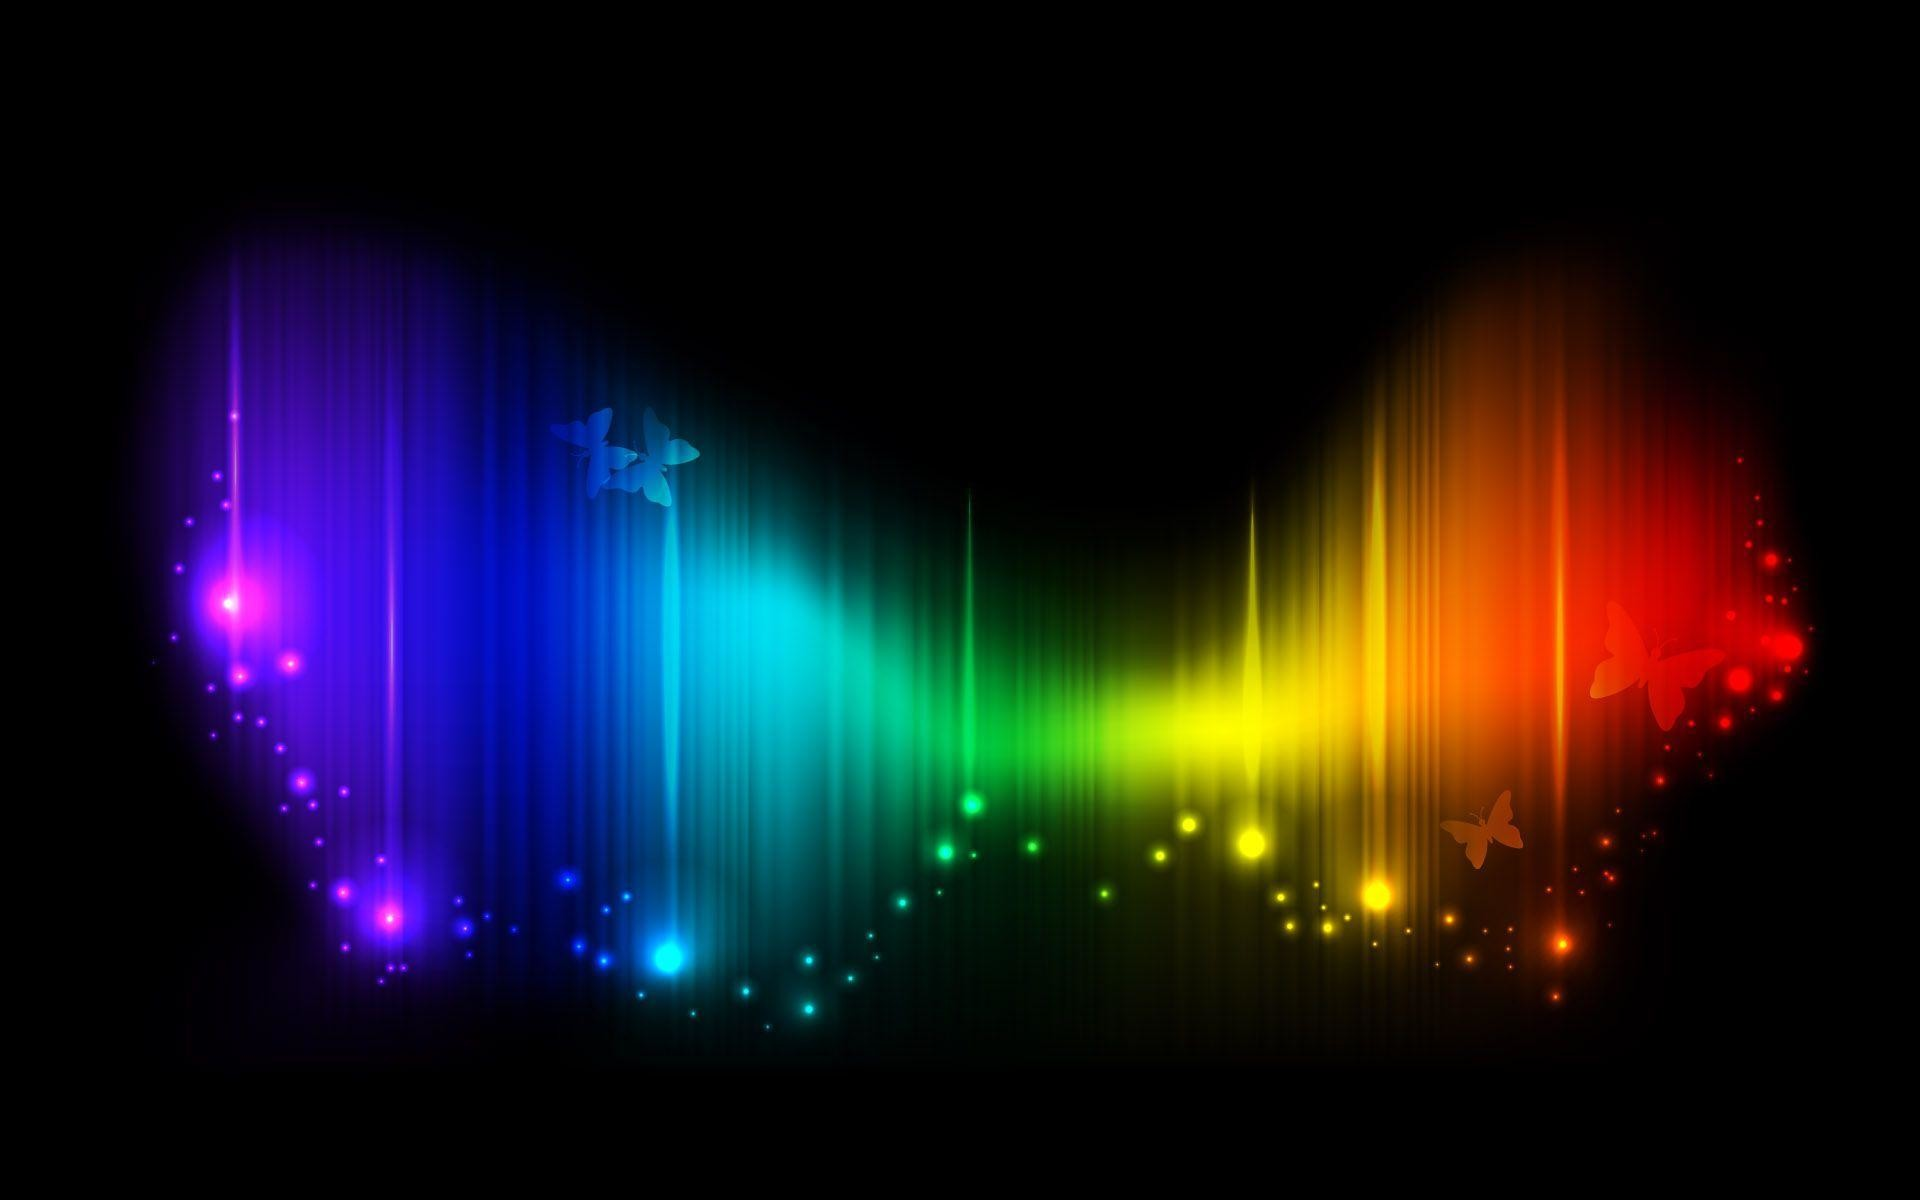 1 Multi Color Wallpapers | Multi Color Backgrounds